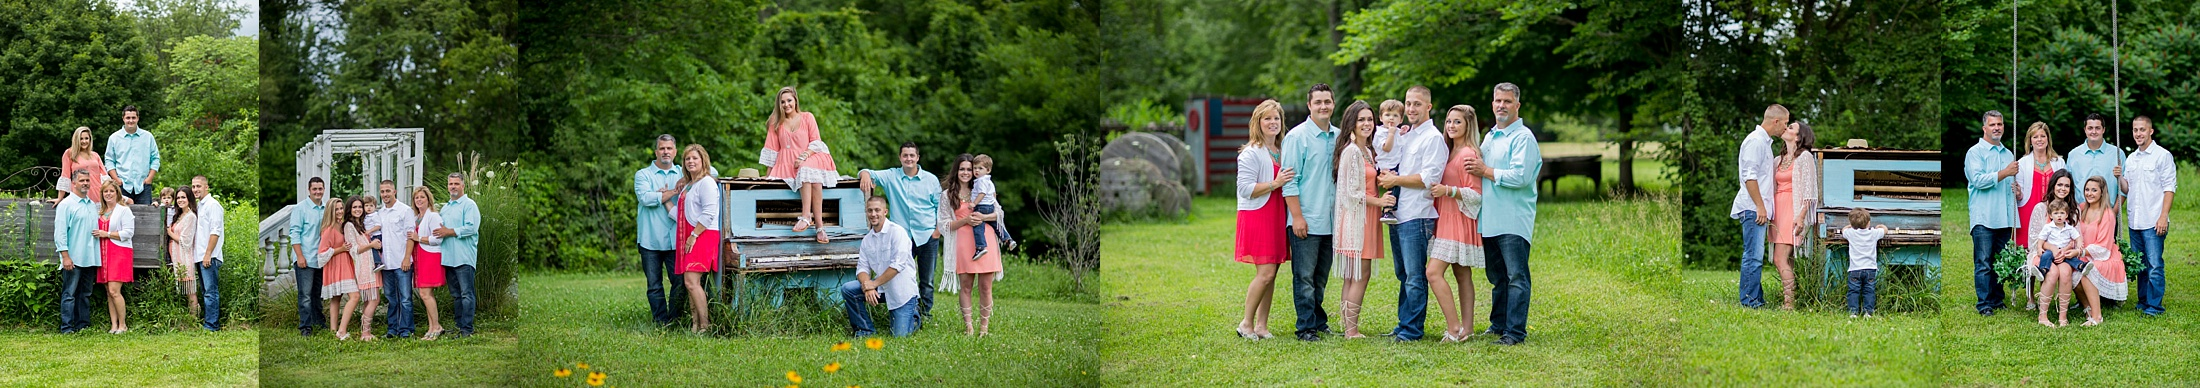 INDIANAPOLIS FAMILY PICTURES indiana carmel fishers greenwood plainfield avon portraits